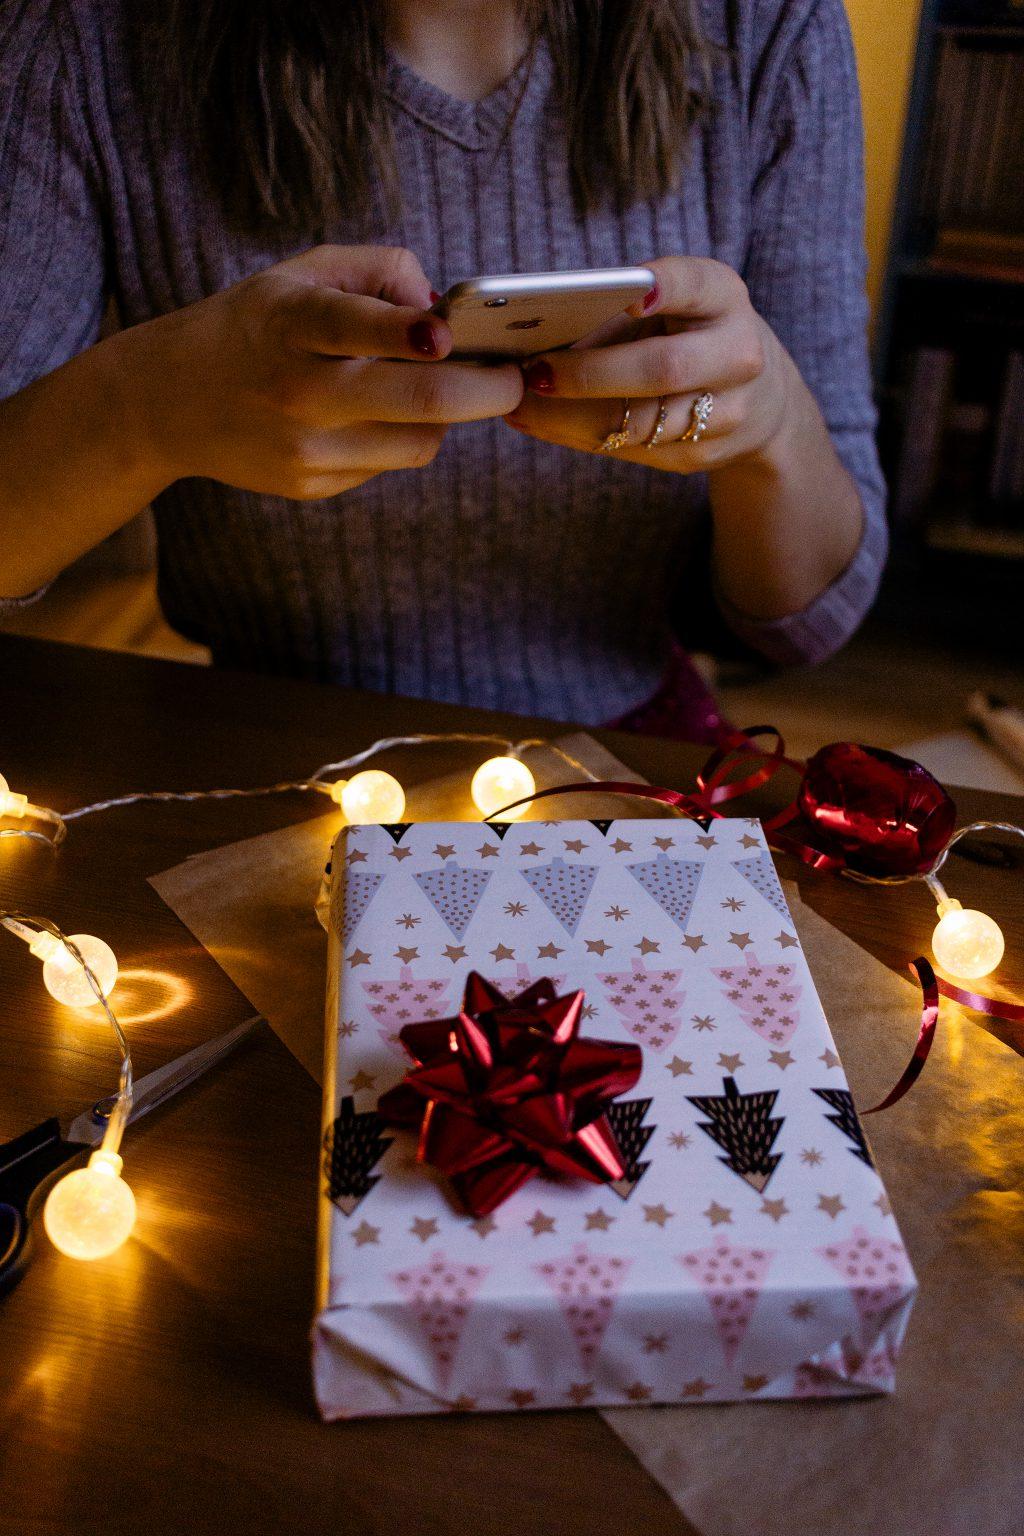 A female taking picture of a christmas gift 2 - free stock photo